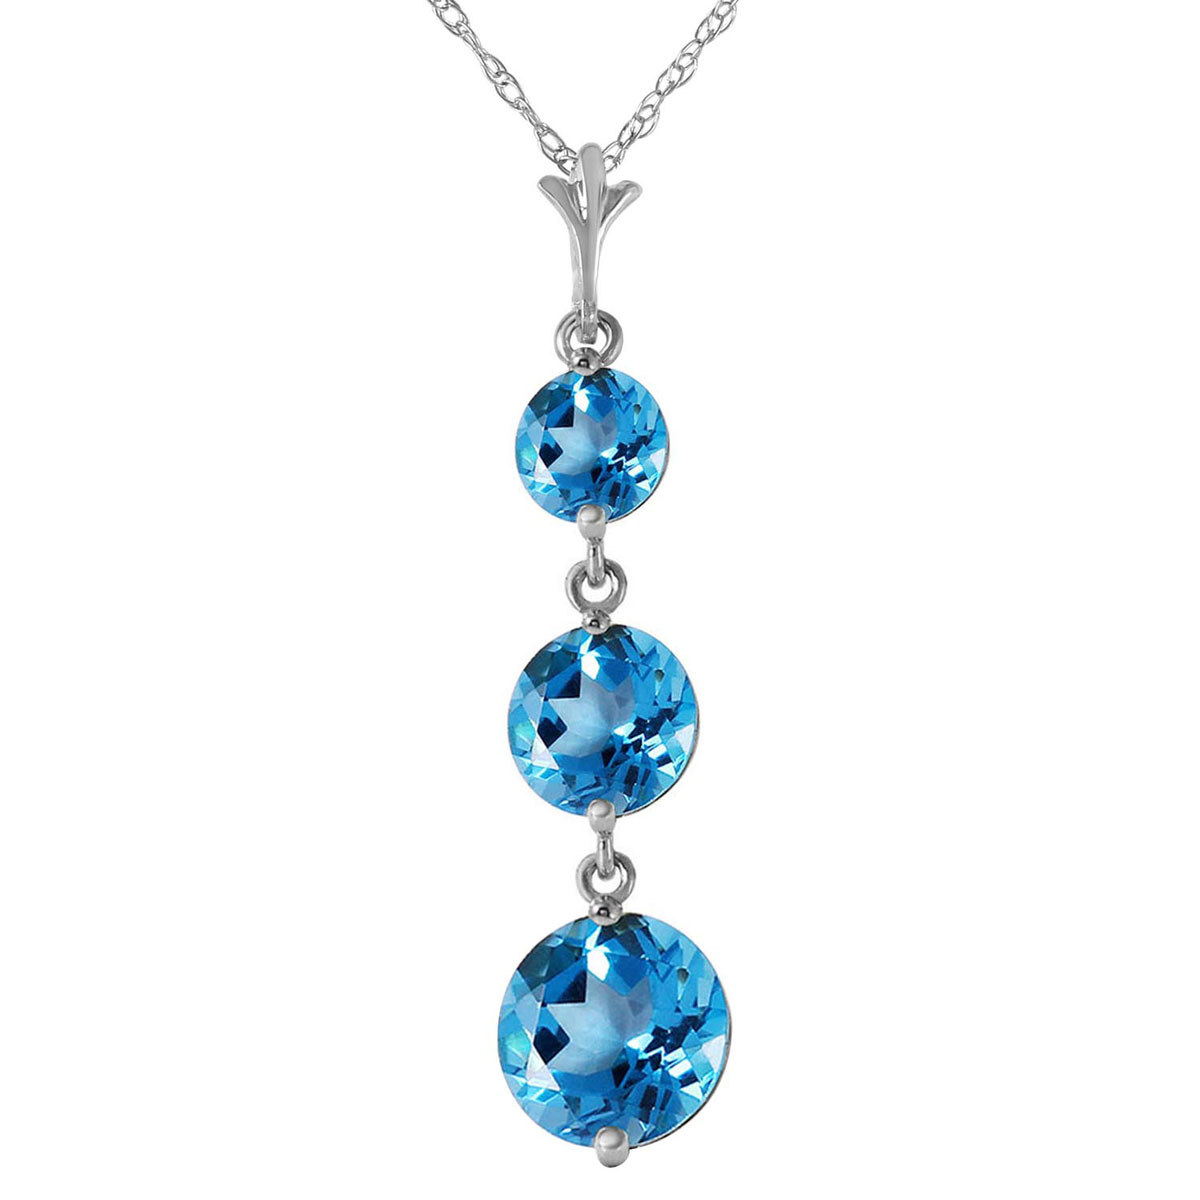 Blue Topaz Trinity Pendant Necklace 3.6 ctw in 9ct White Gold